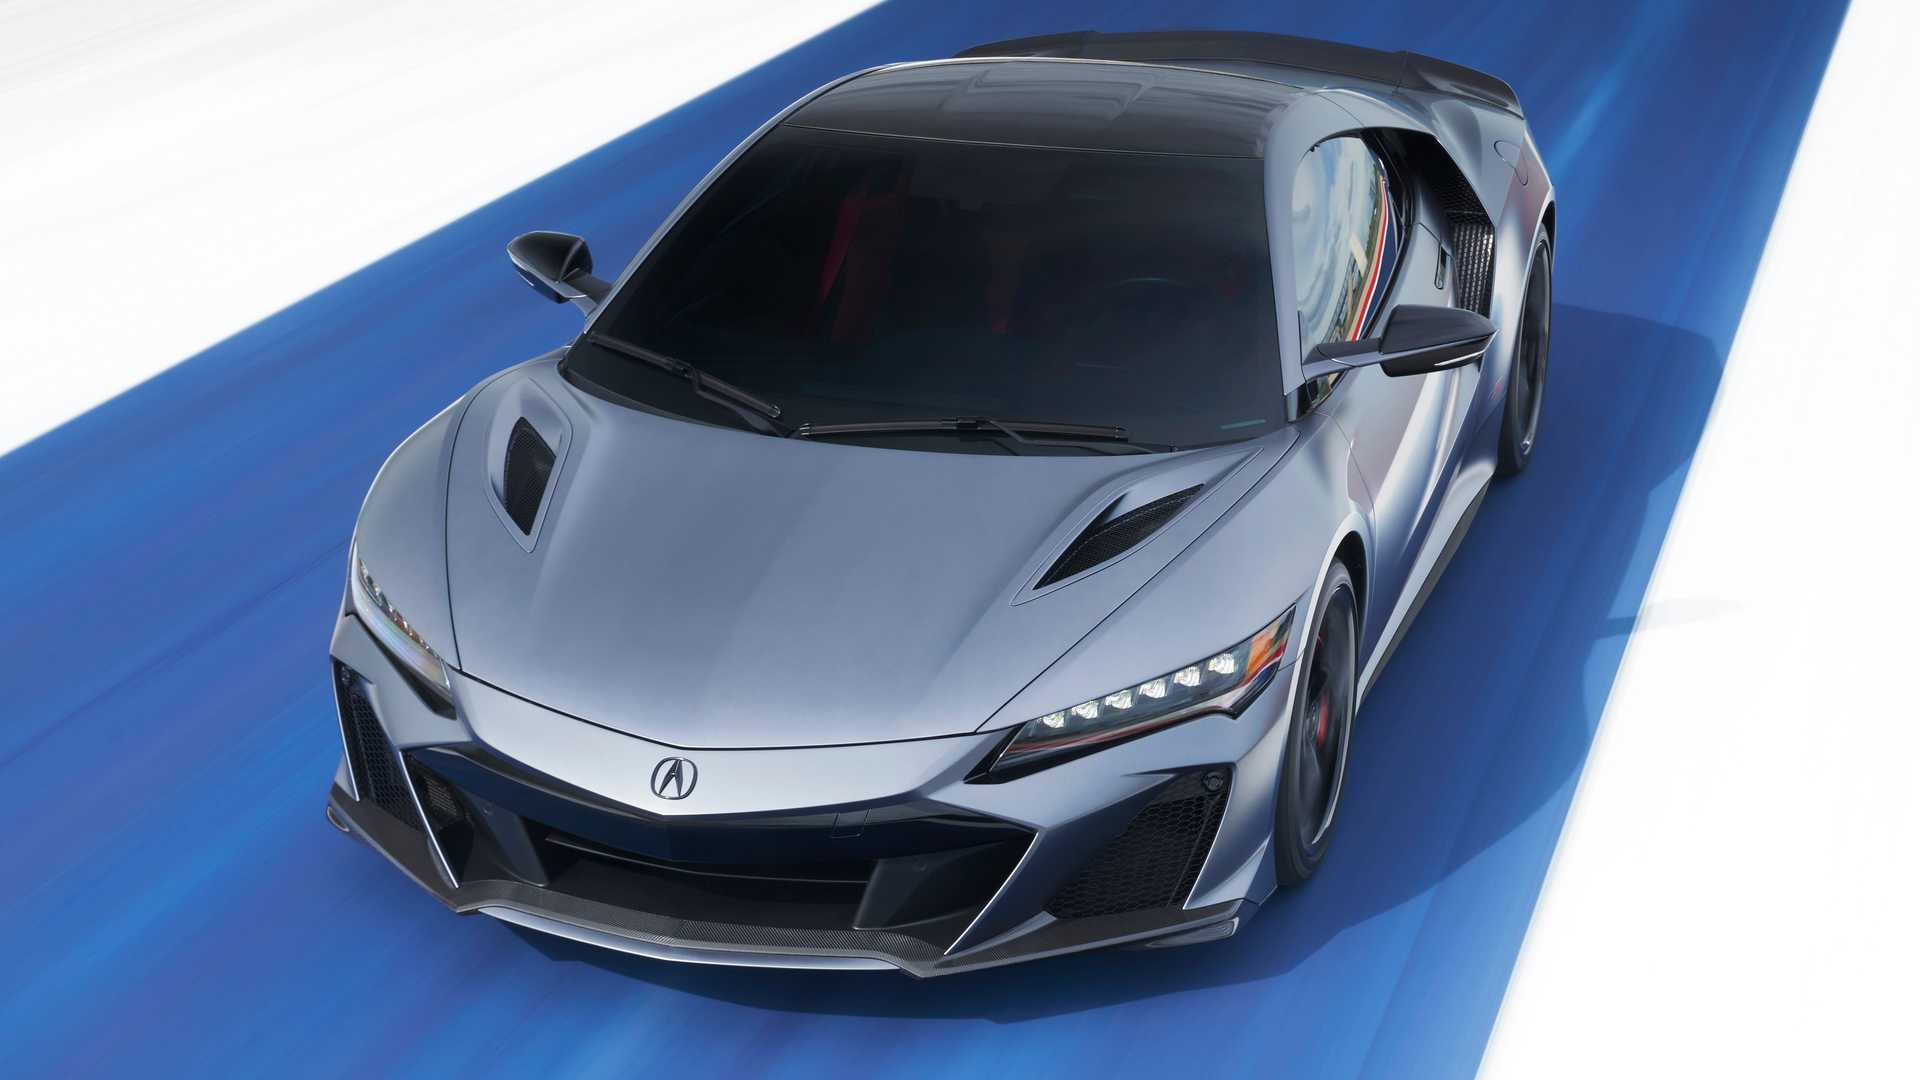 2022 Acura NSX Type S Front Blue Background